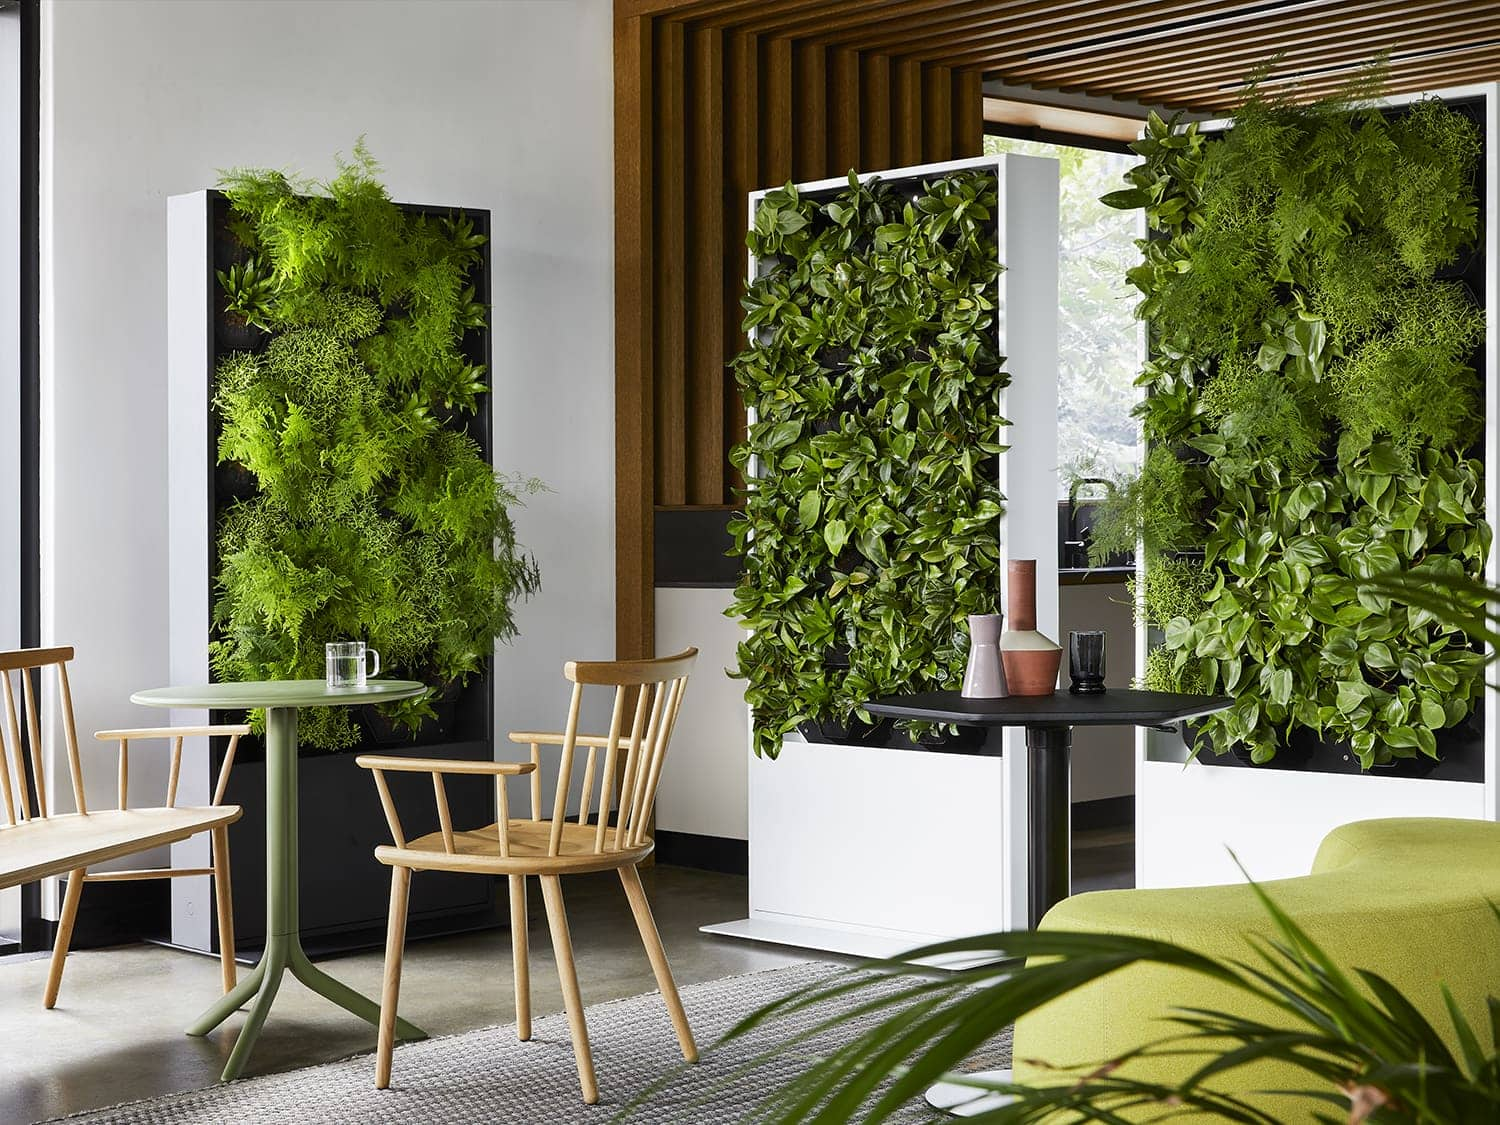 An office canteen featuring vertical planted panels. Photo by Elsa Young.